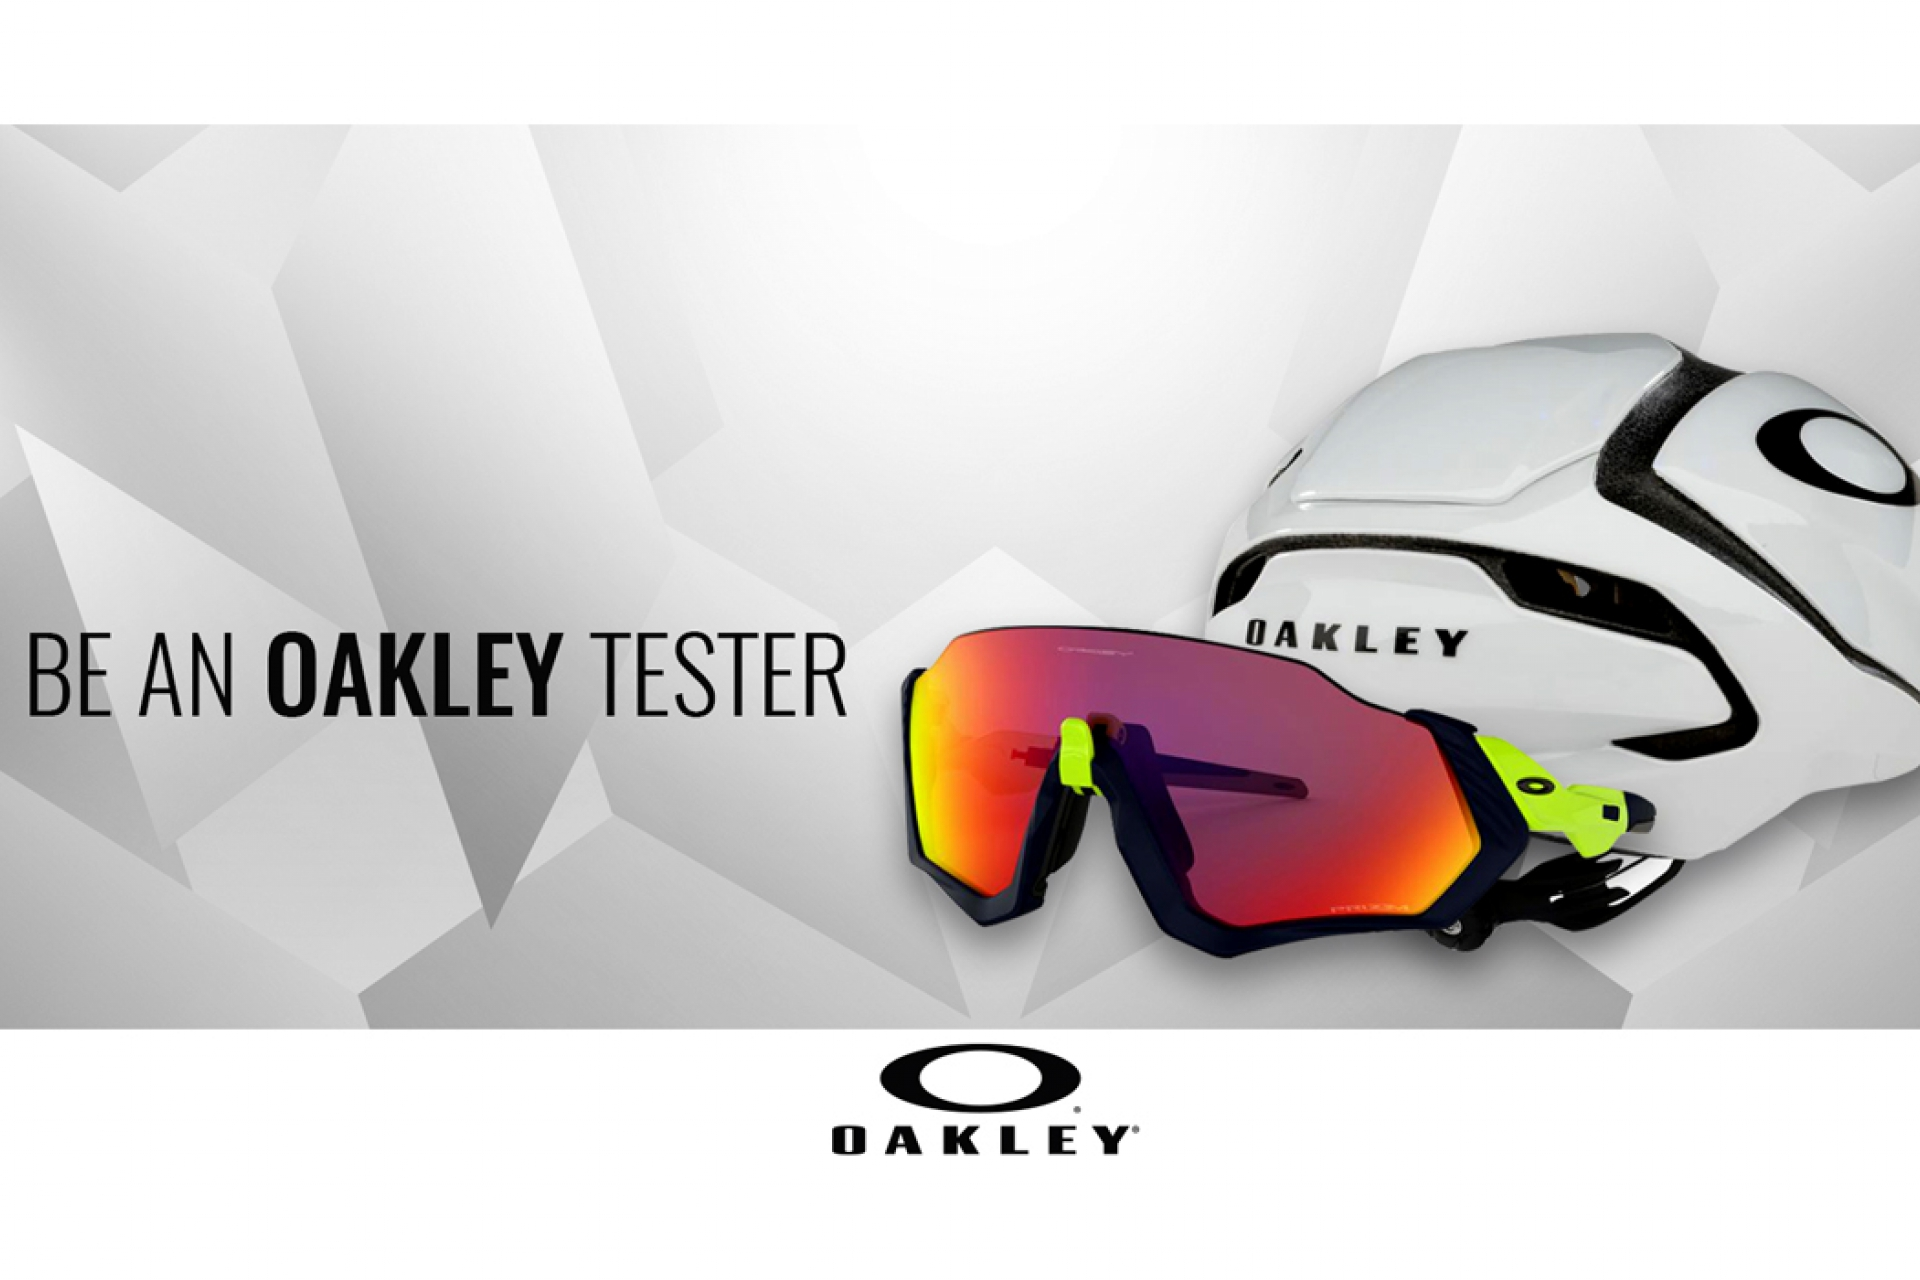 Do you want to be an Oakley tester?